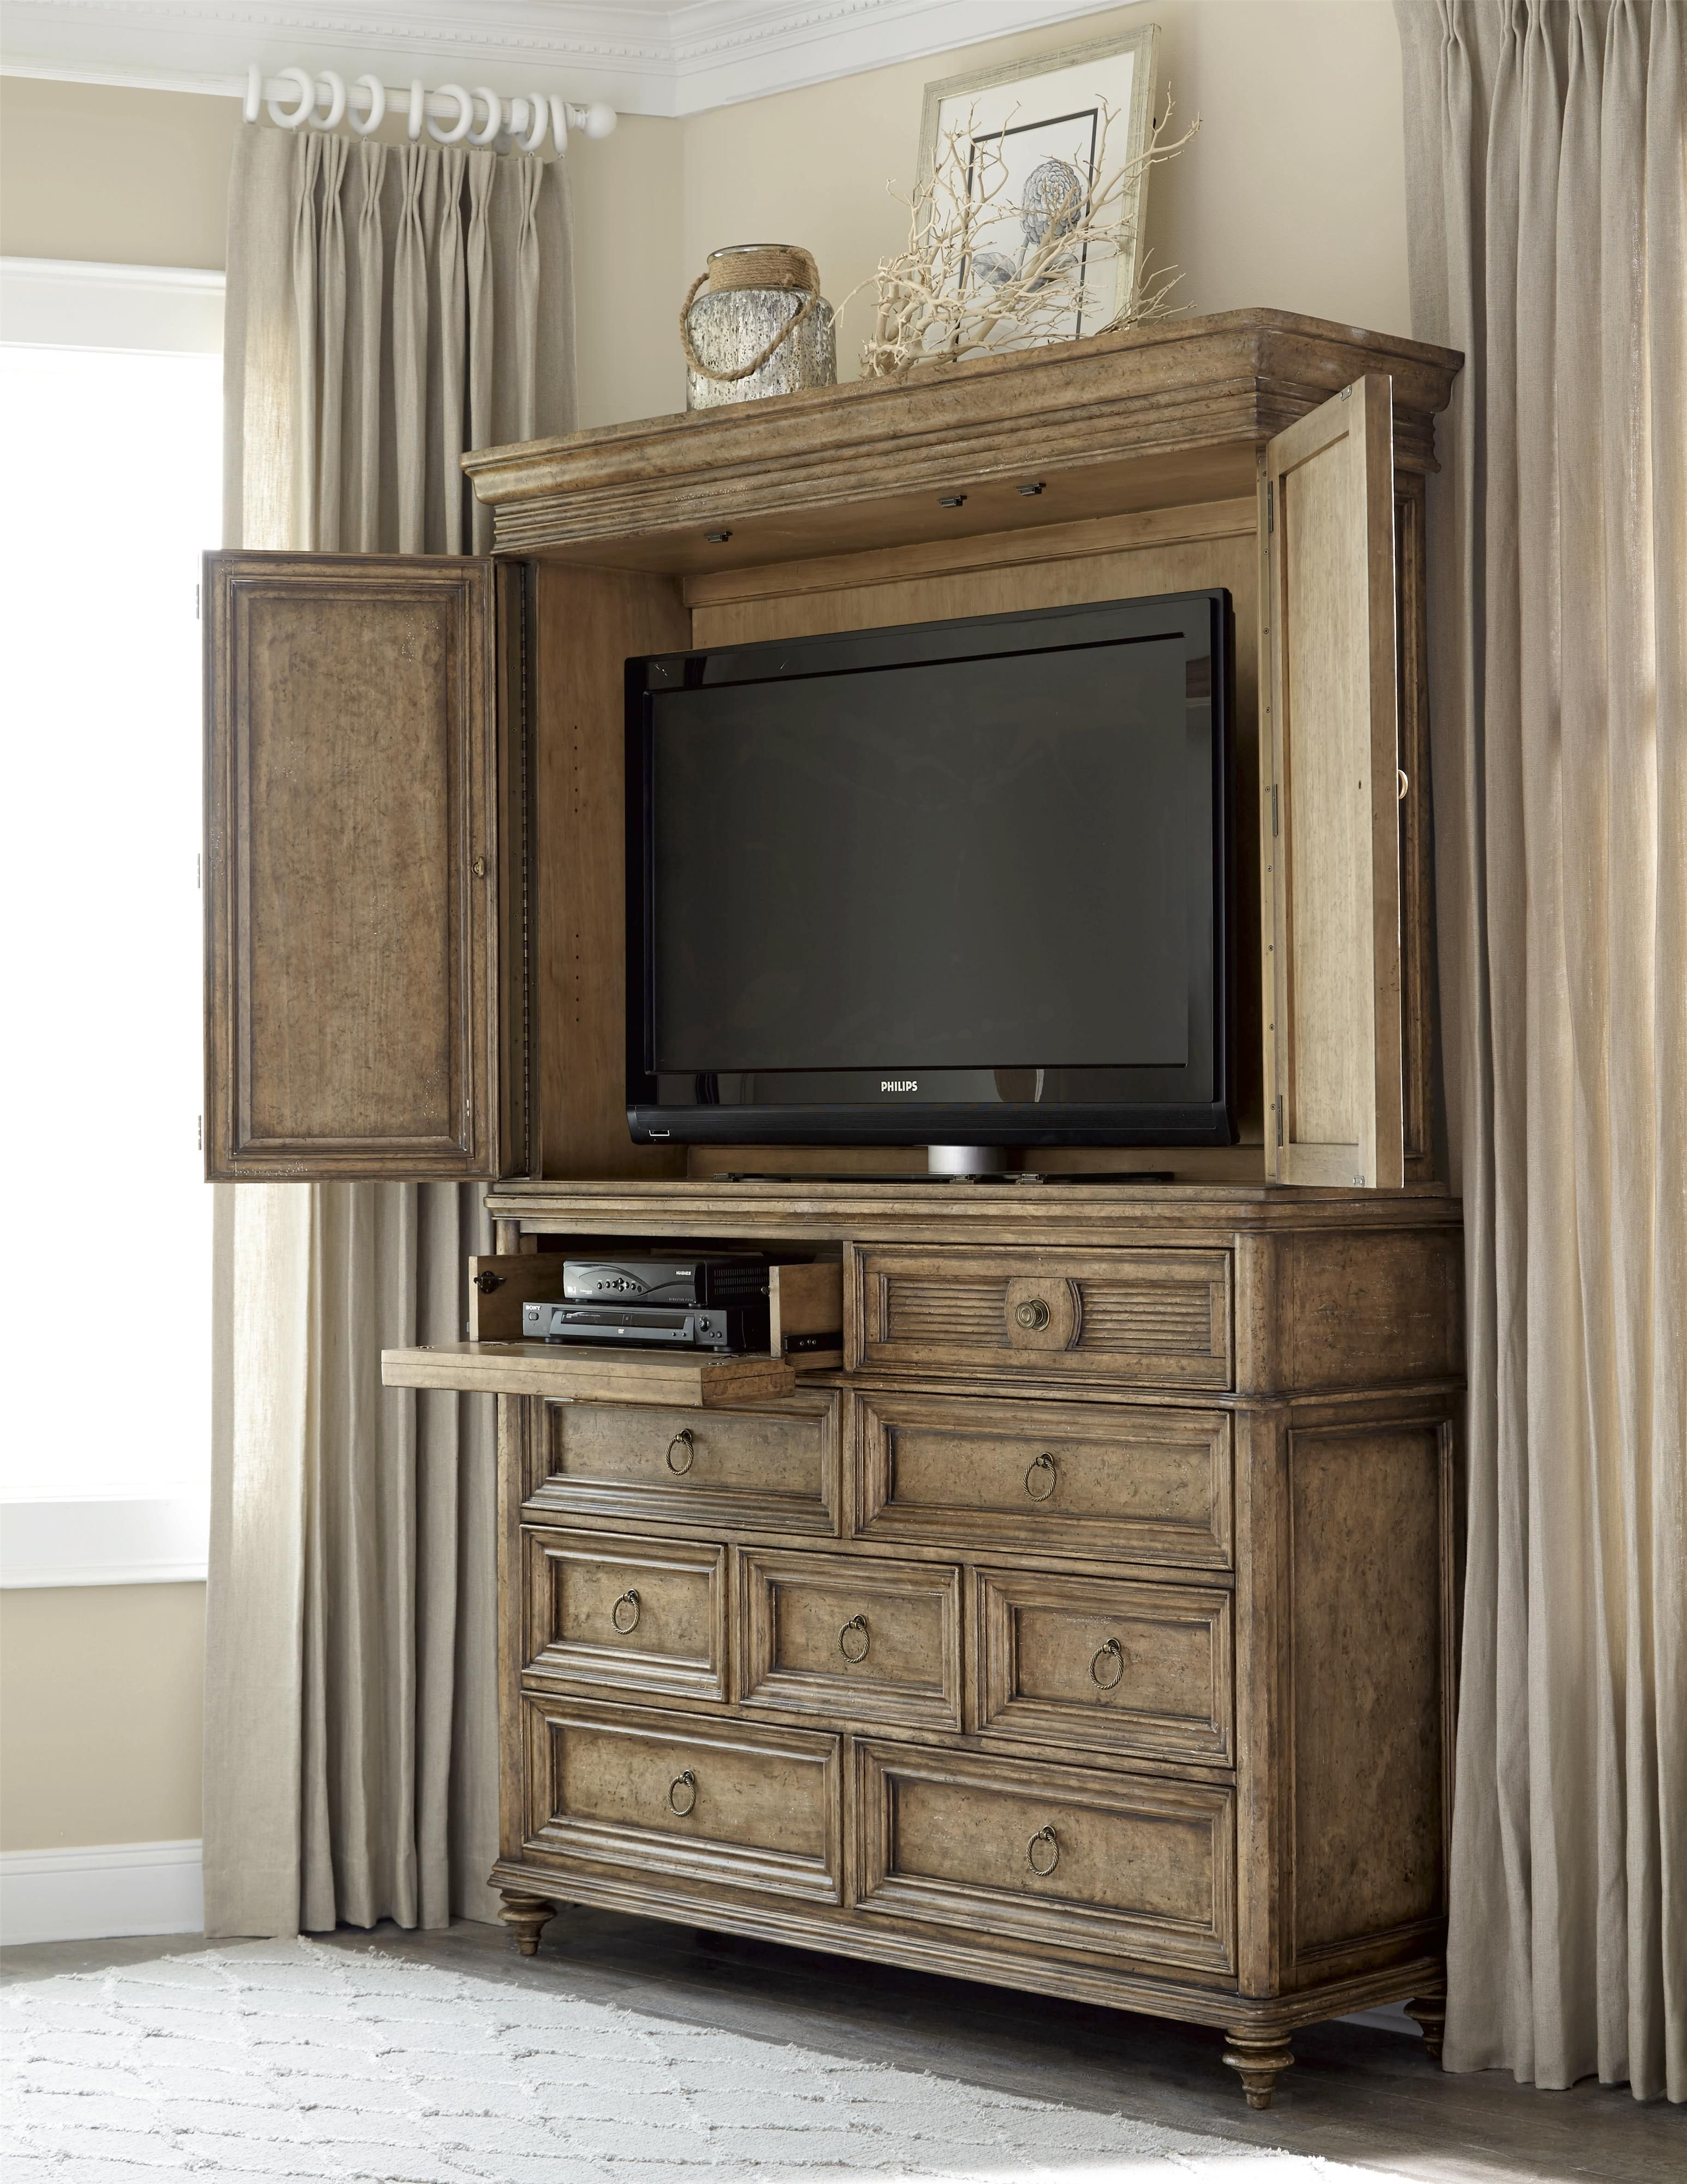 This Grand Armoire Offers Great Style And Function To A